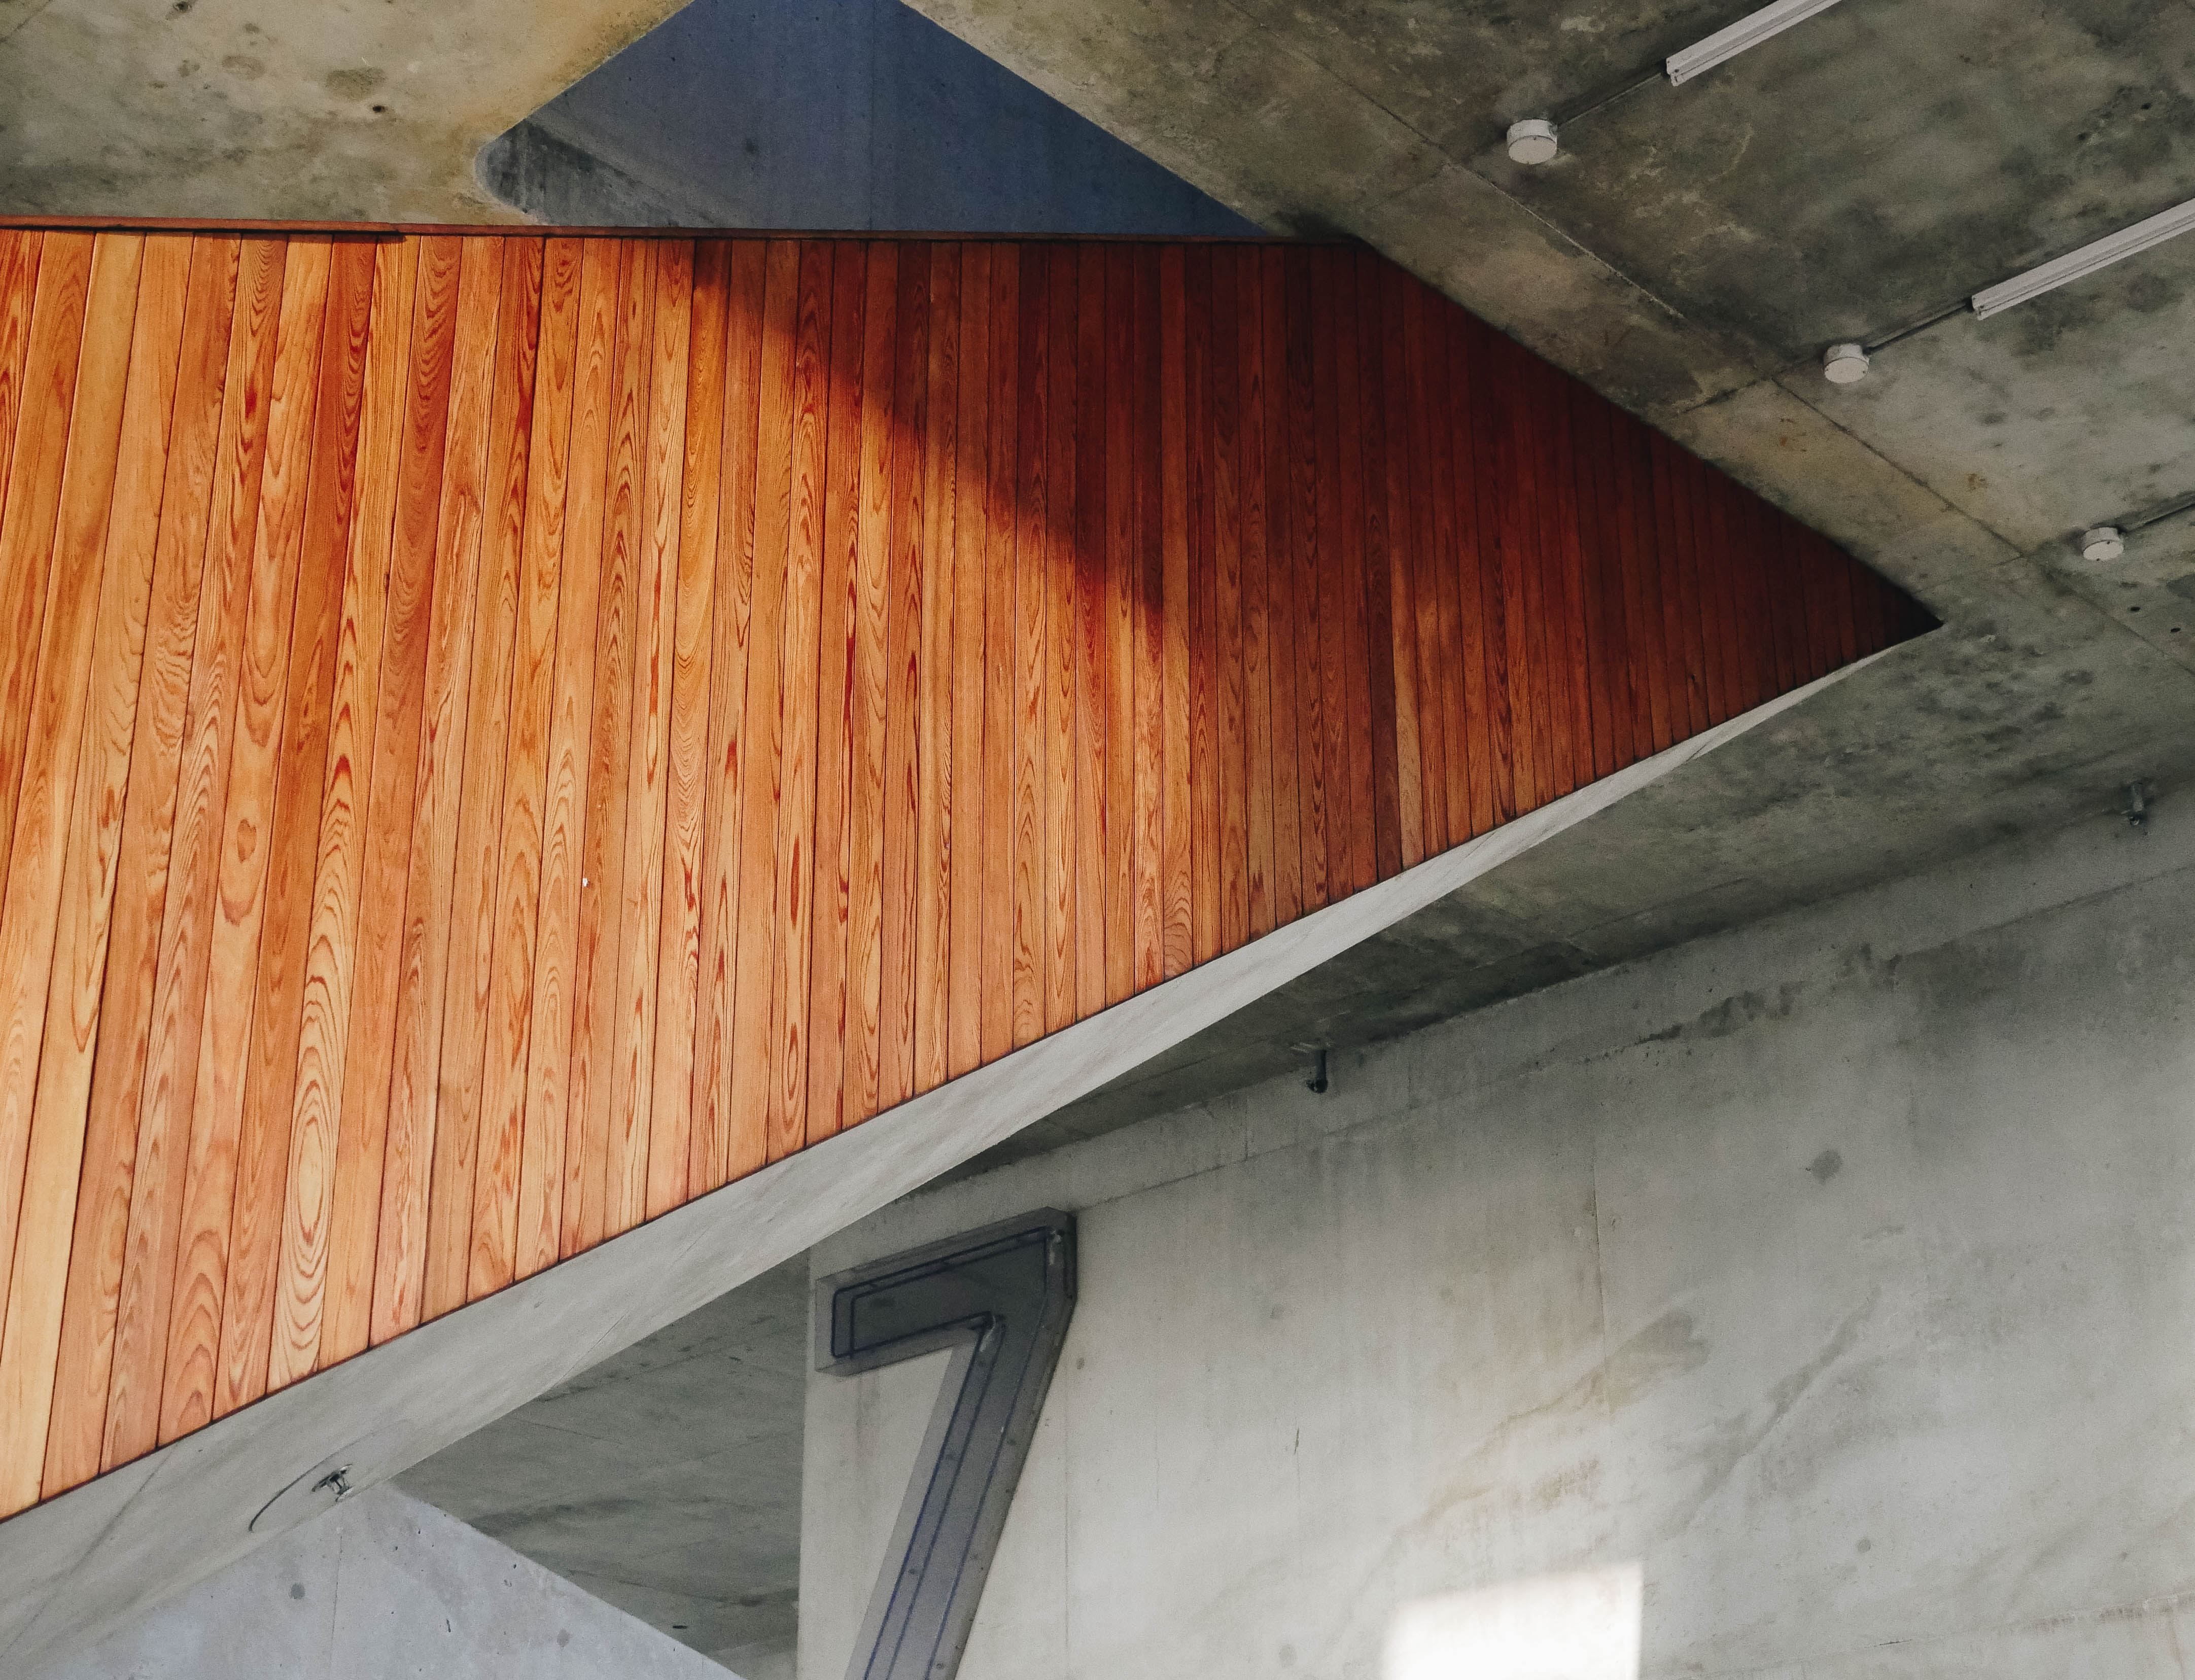 Wooden panelling on the side of a staircase in a building with bare concrete walls